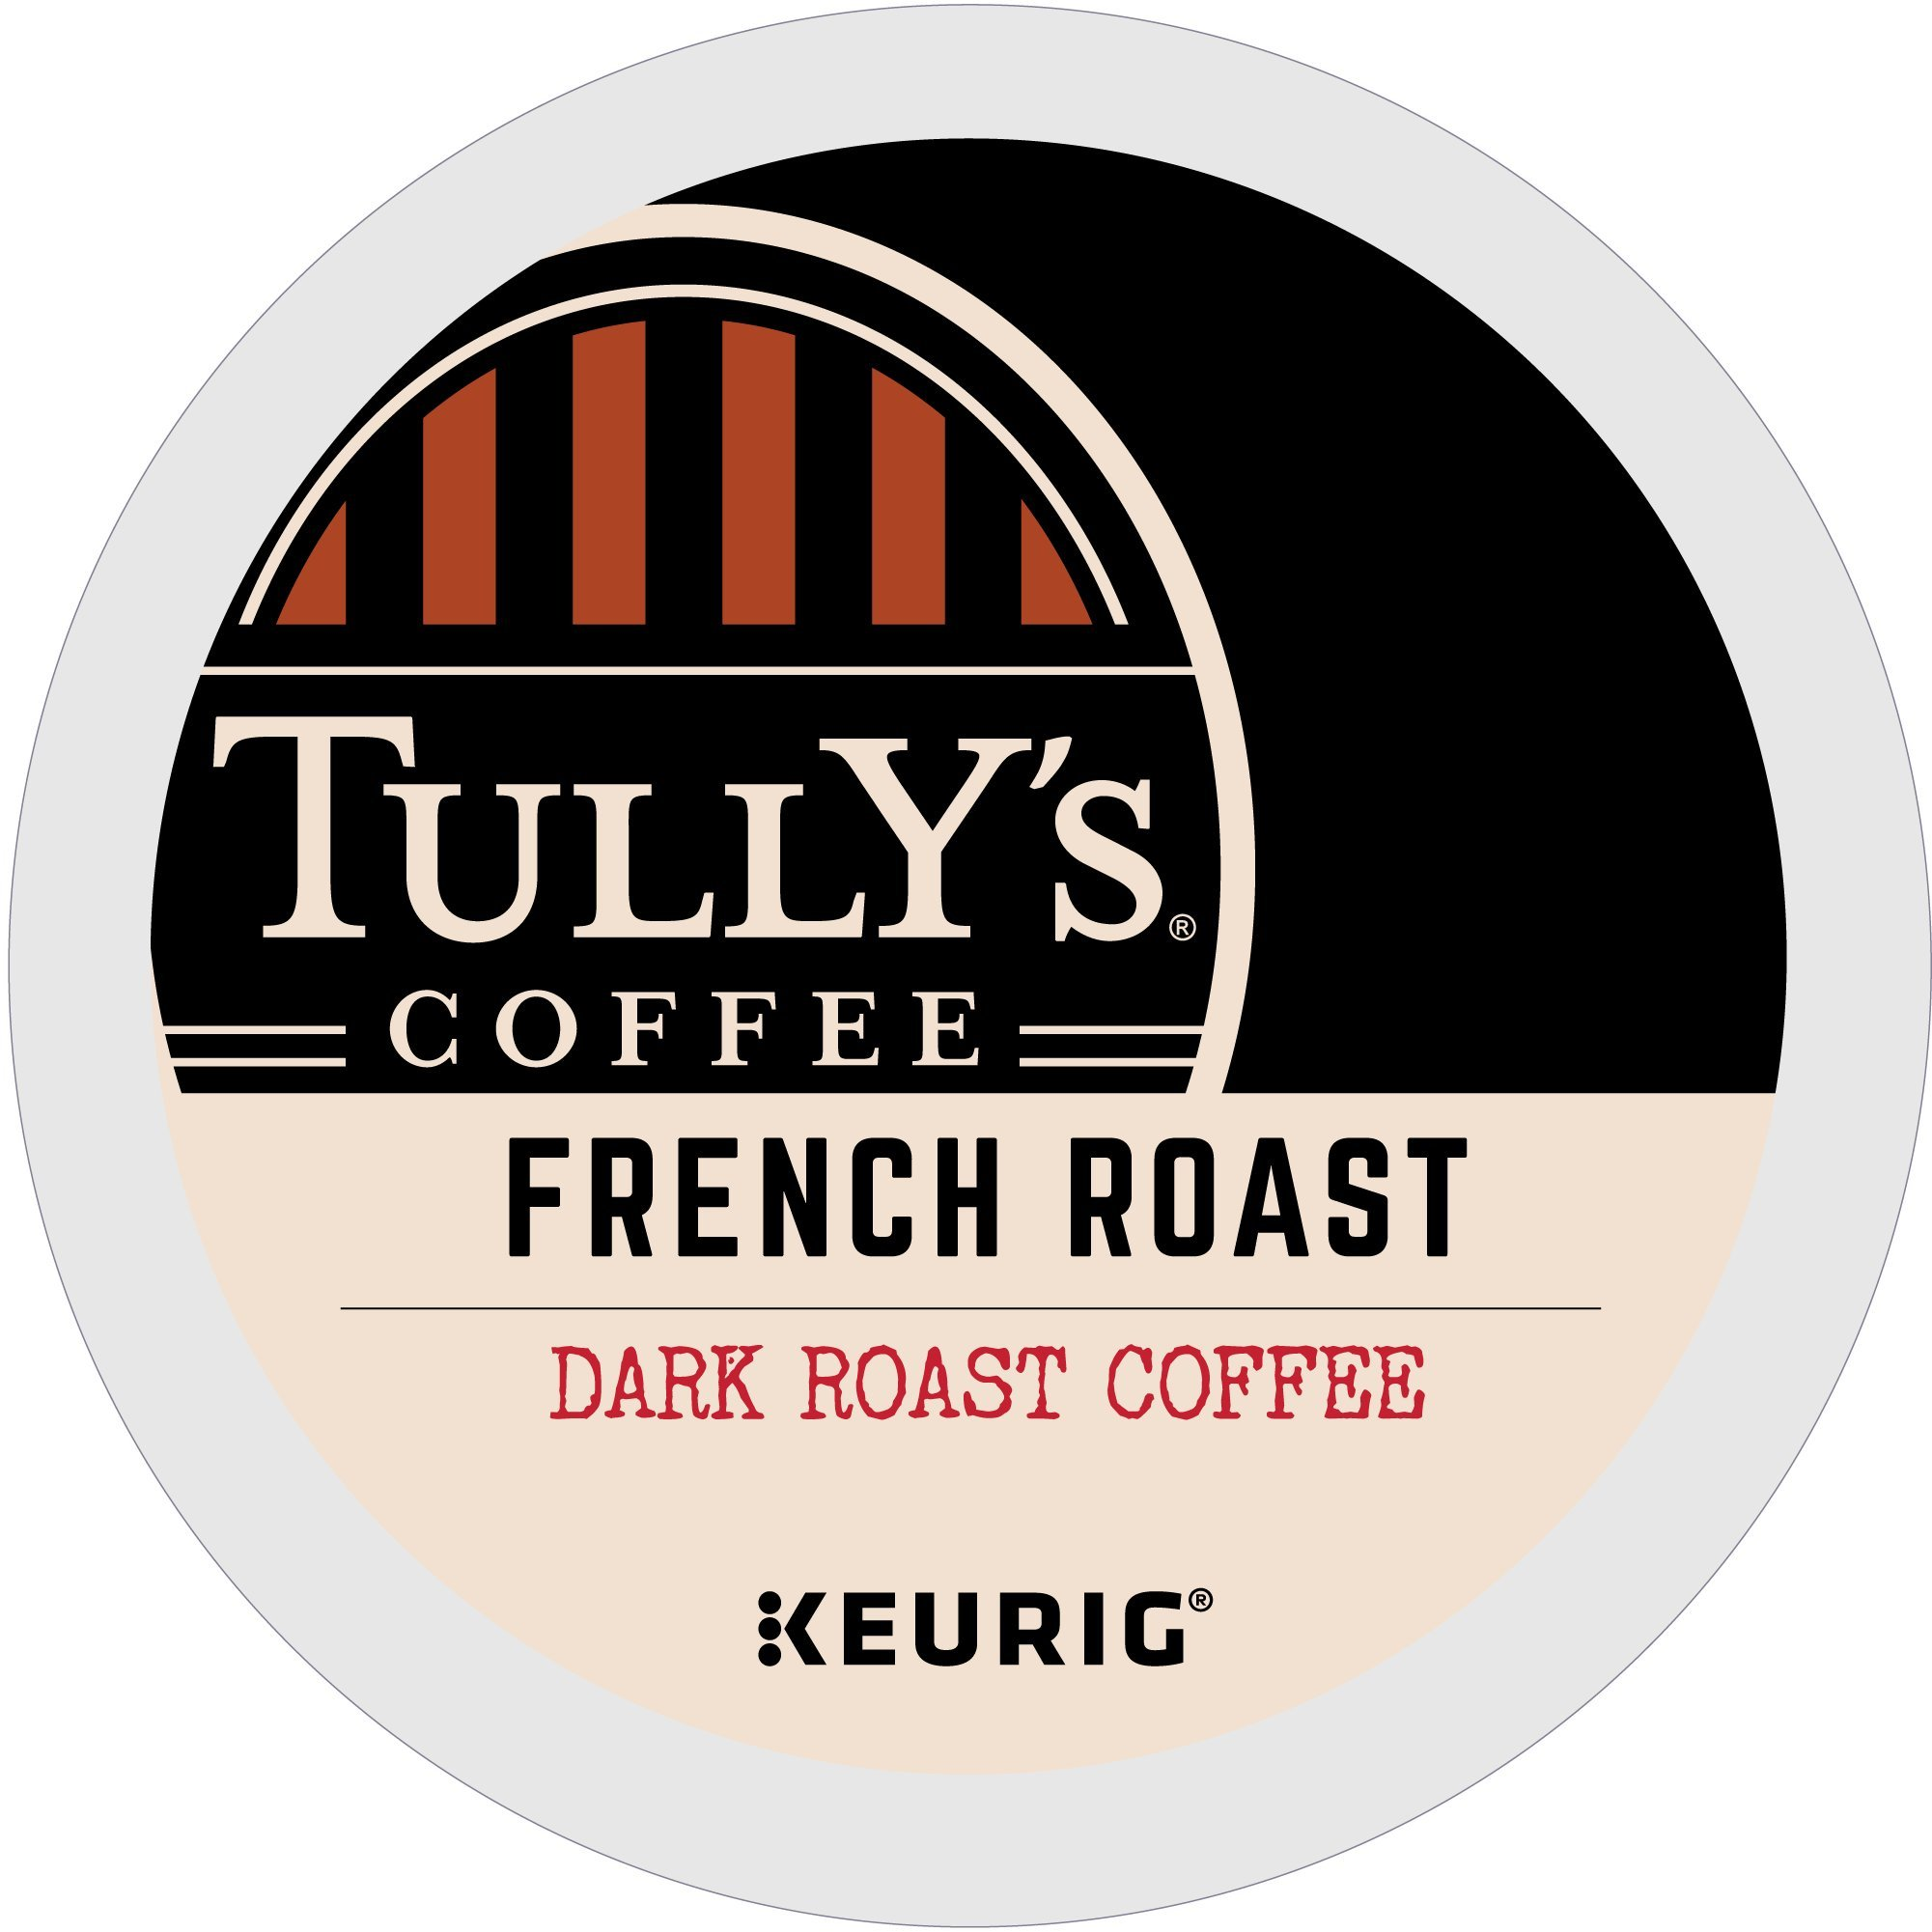 Tully's Coffee French Roast Keurig Single-Serve K-Cup Pods, Dark Roast Coffee, 72 Count (6 Boxes of 12 Pods) ( Pack May Vary )